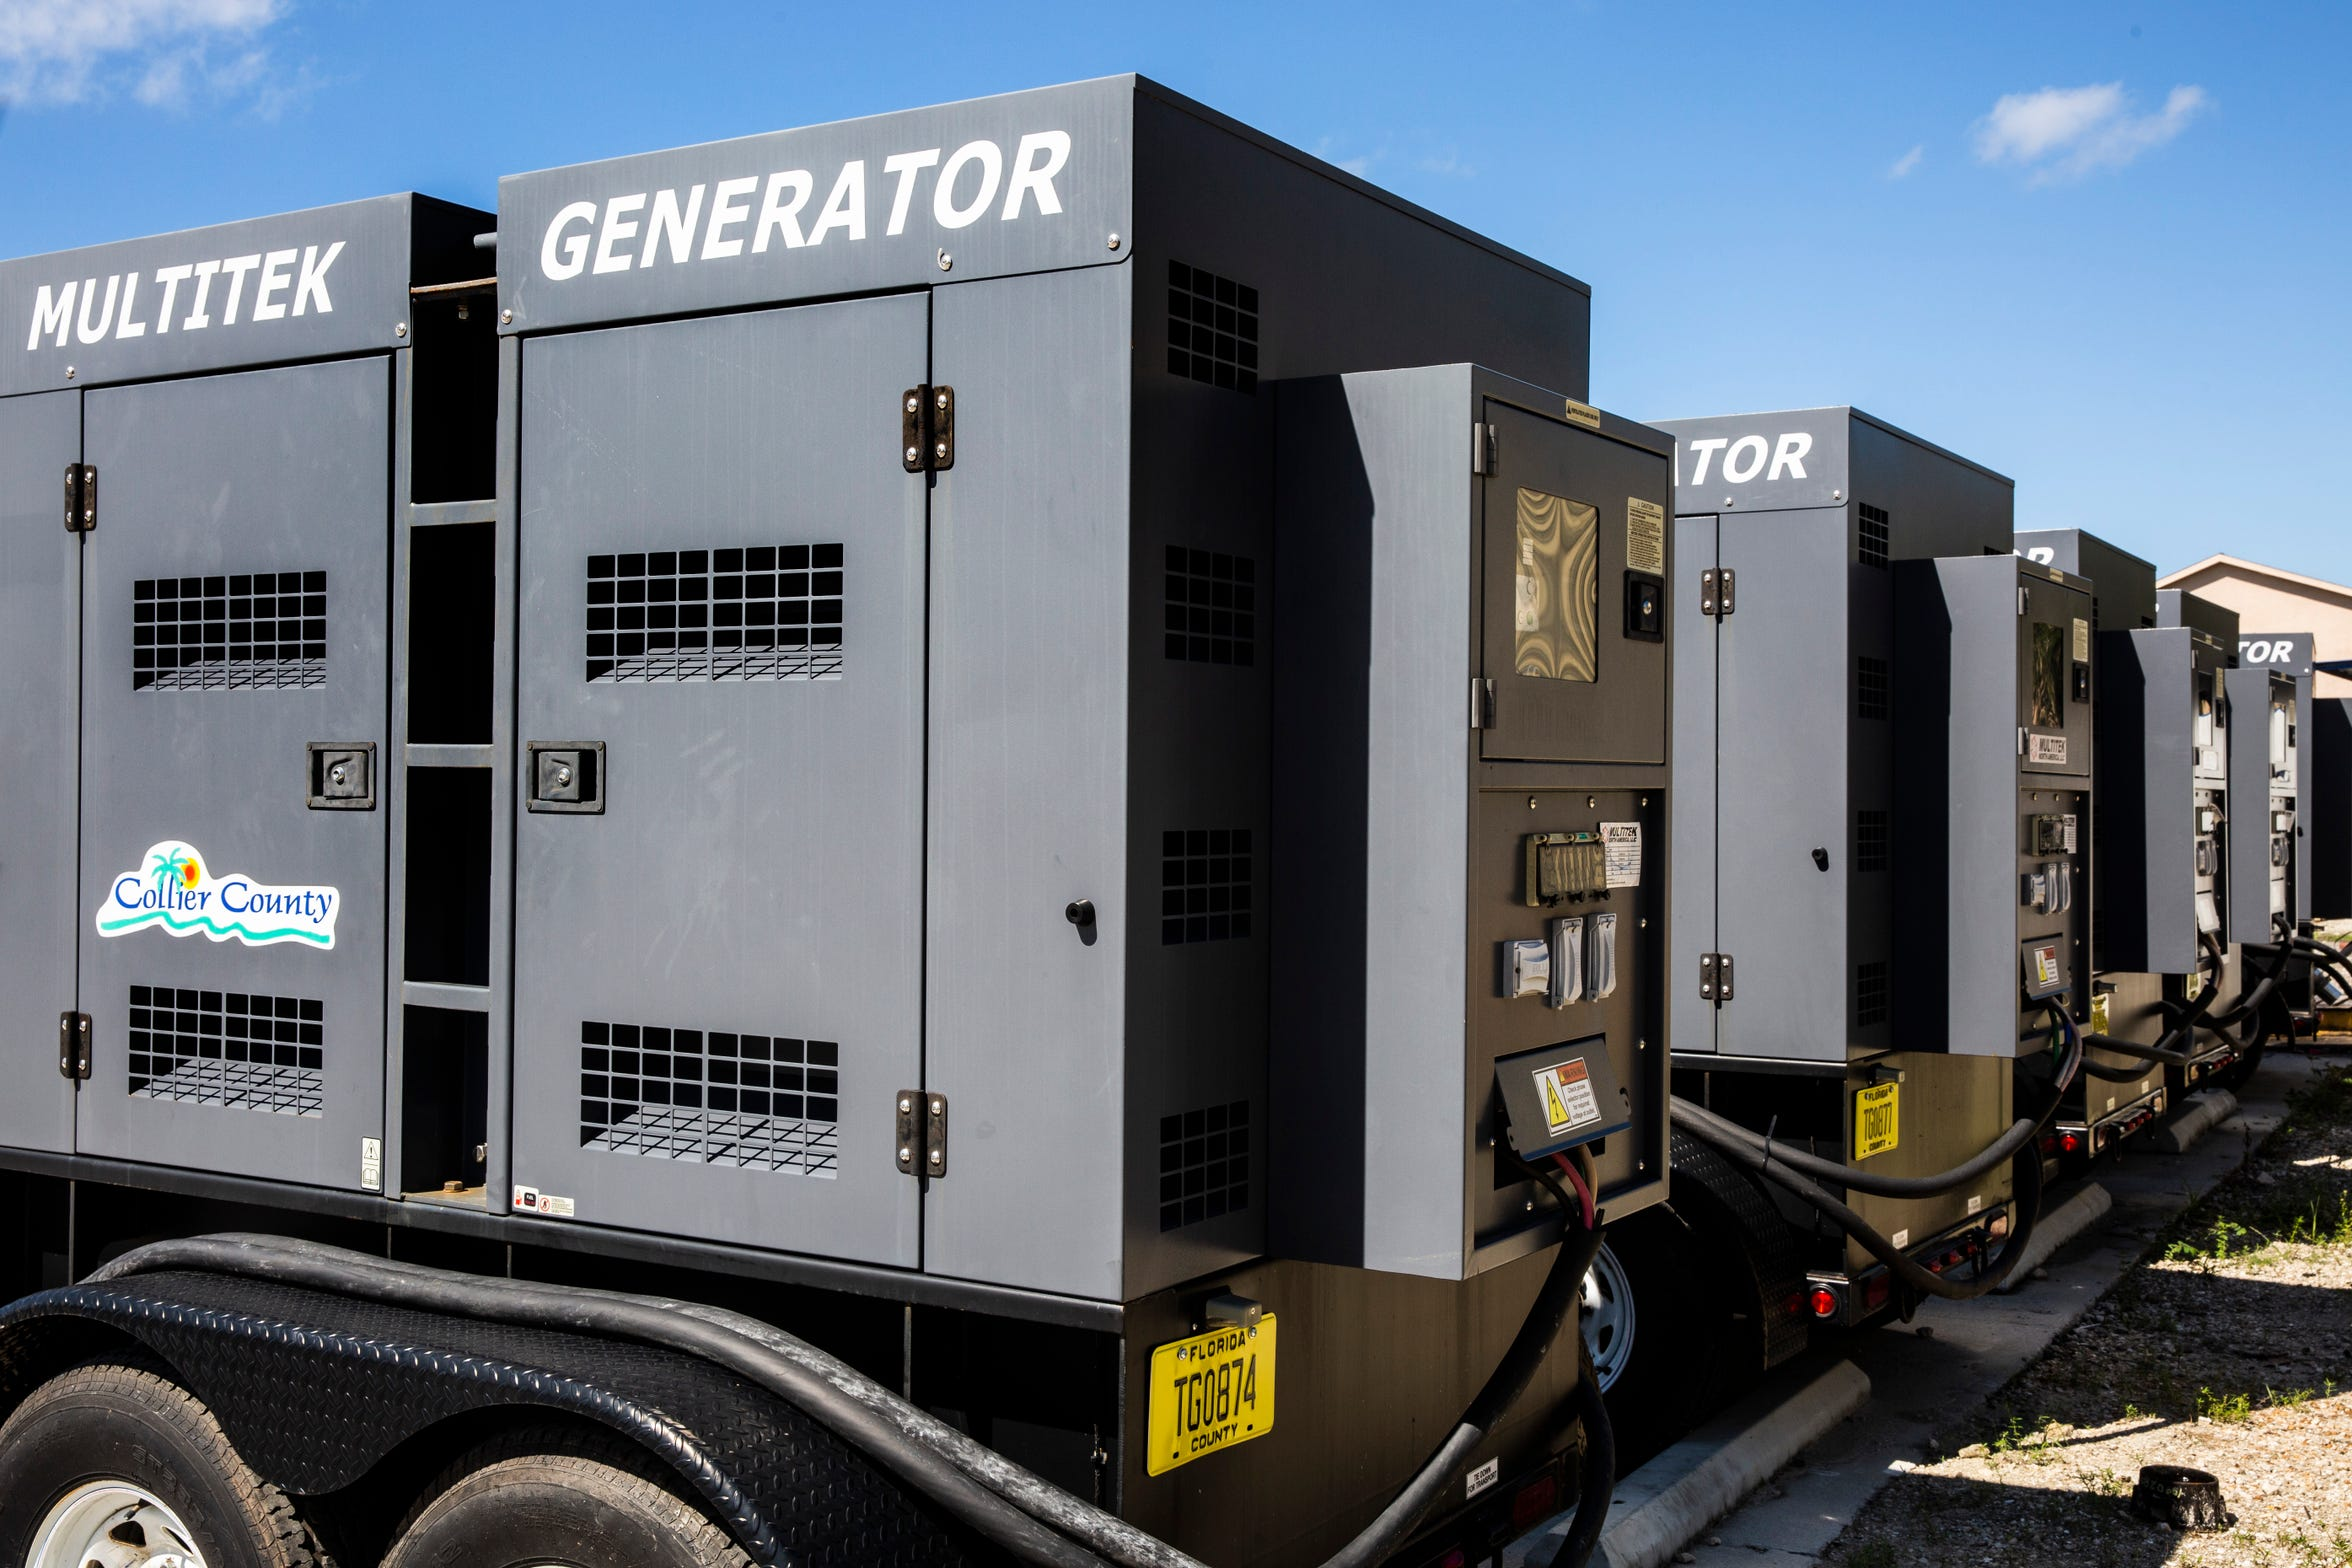 New portable generators sit at Collier County Utilities' Wastewater Division Collections Section work yard in Naples on Tuesday, Aug. 28, 2018. Most Collier and Lee utilities have added backup power sources to avoid sewage leaks like they experienced after Hurricane Irma.